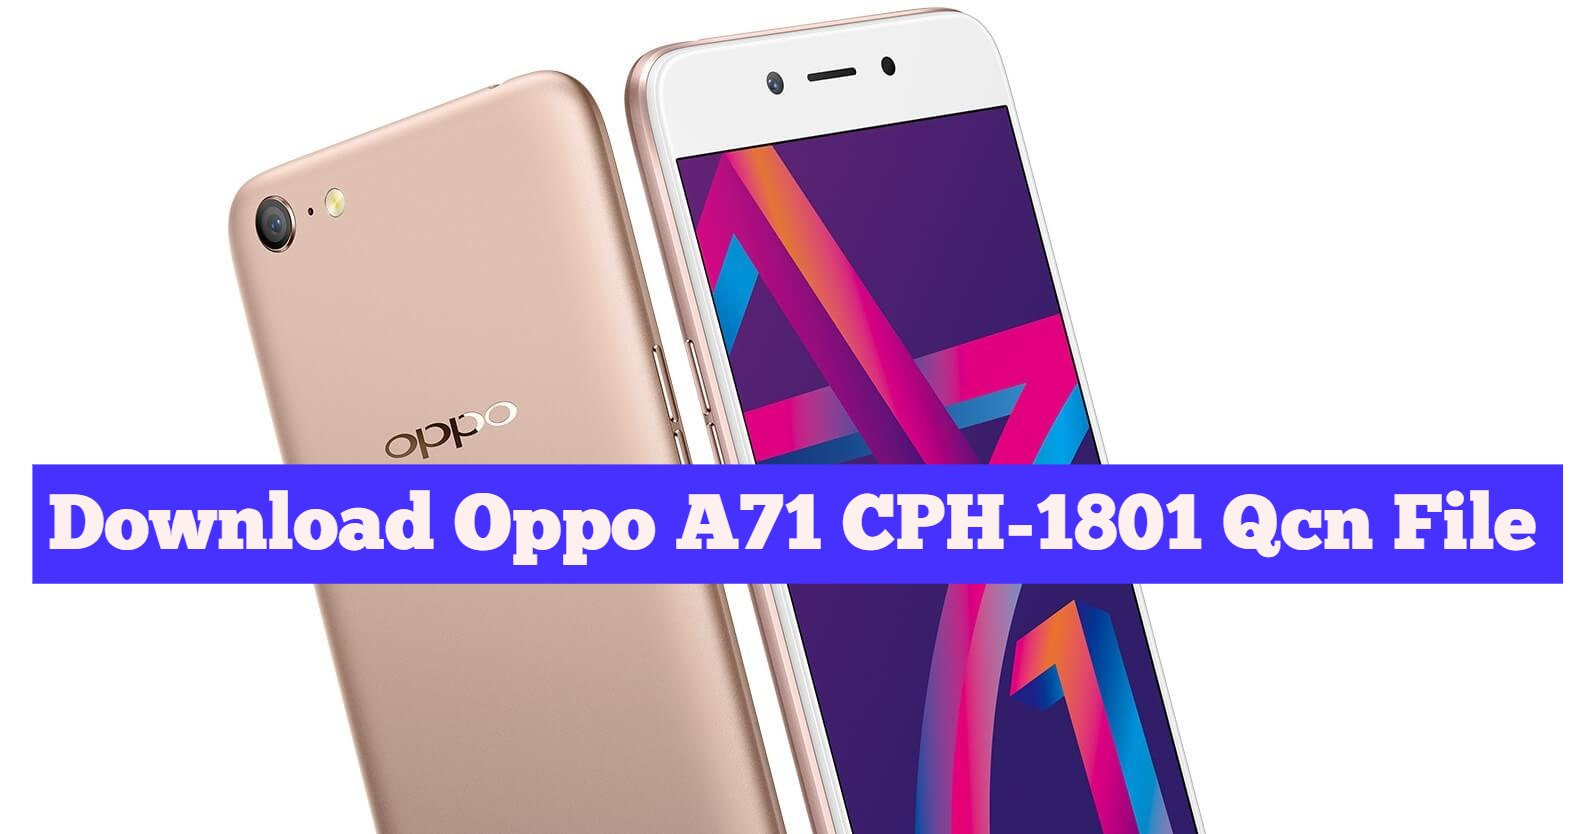 Download Oppo A71 CPH-1801 Qcn File For Network Unlock IMEI